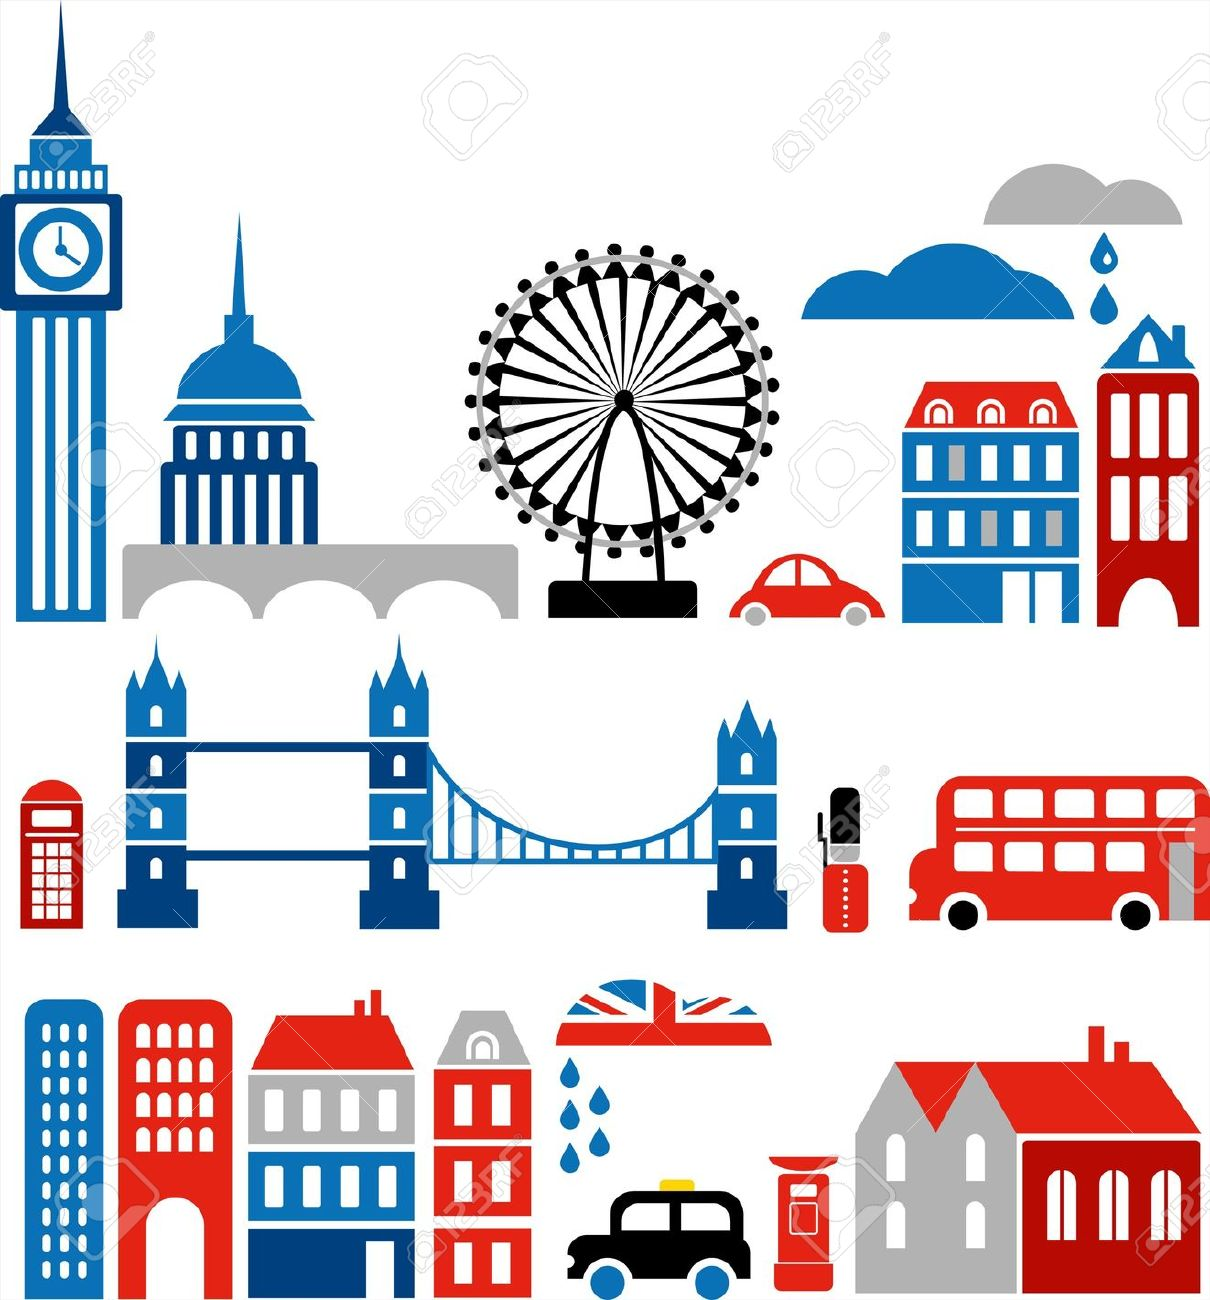 Illustration Of London With Colorful Icons Of Route Master Buses.